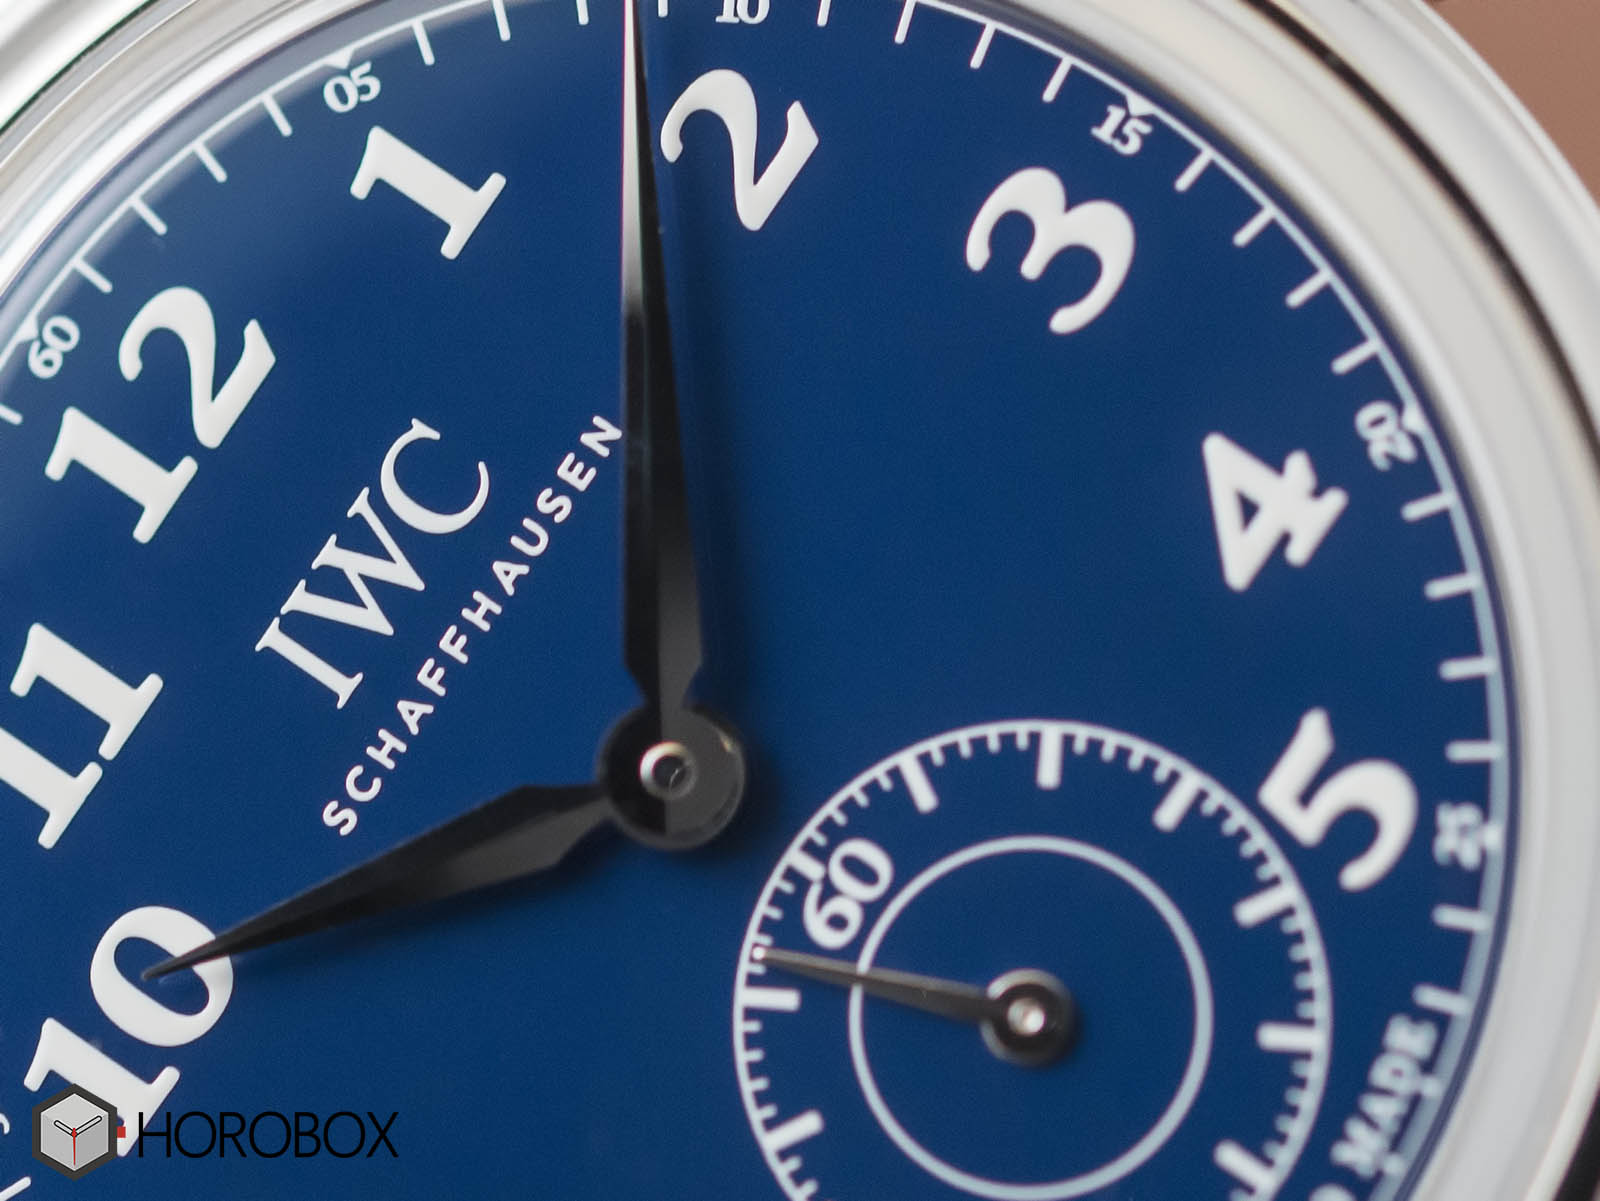 iw358102-iwc-da-vinci-automatic-edition-150-years-2.jpg